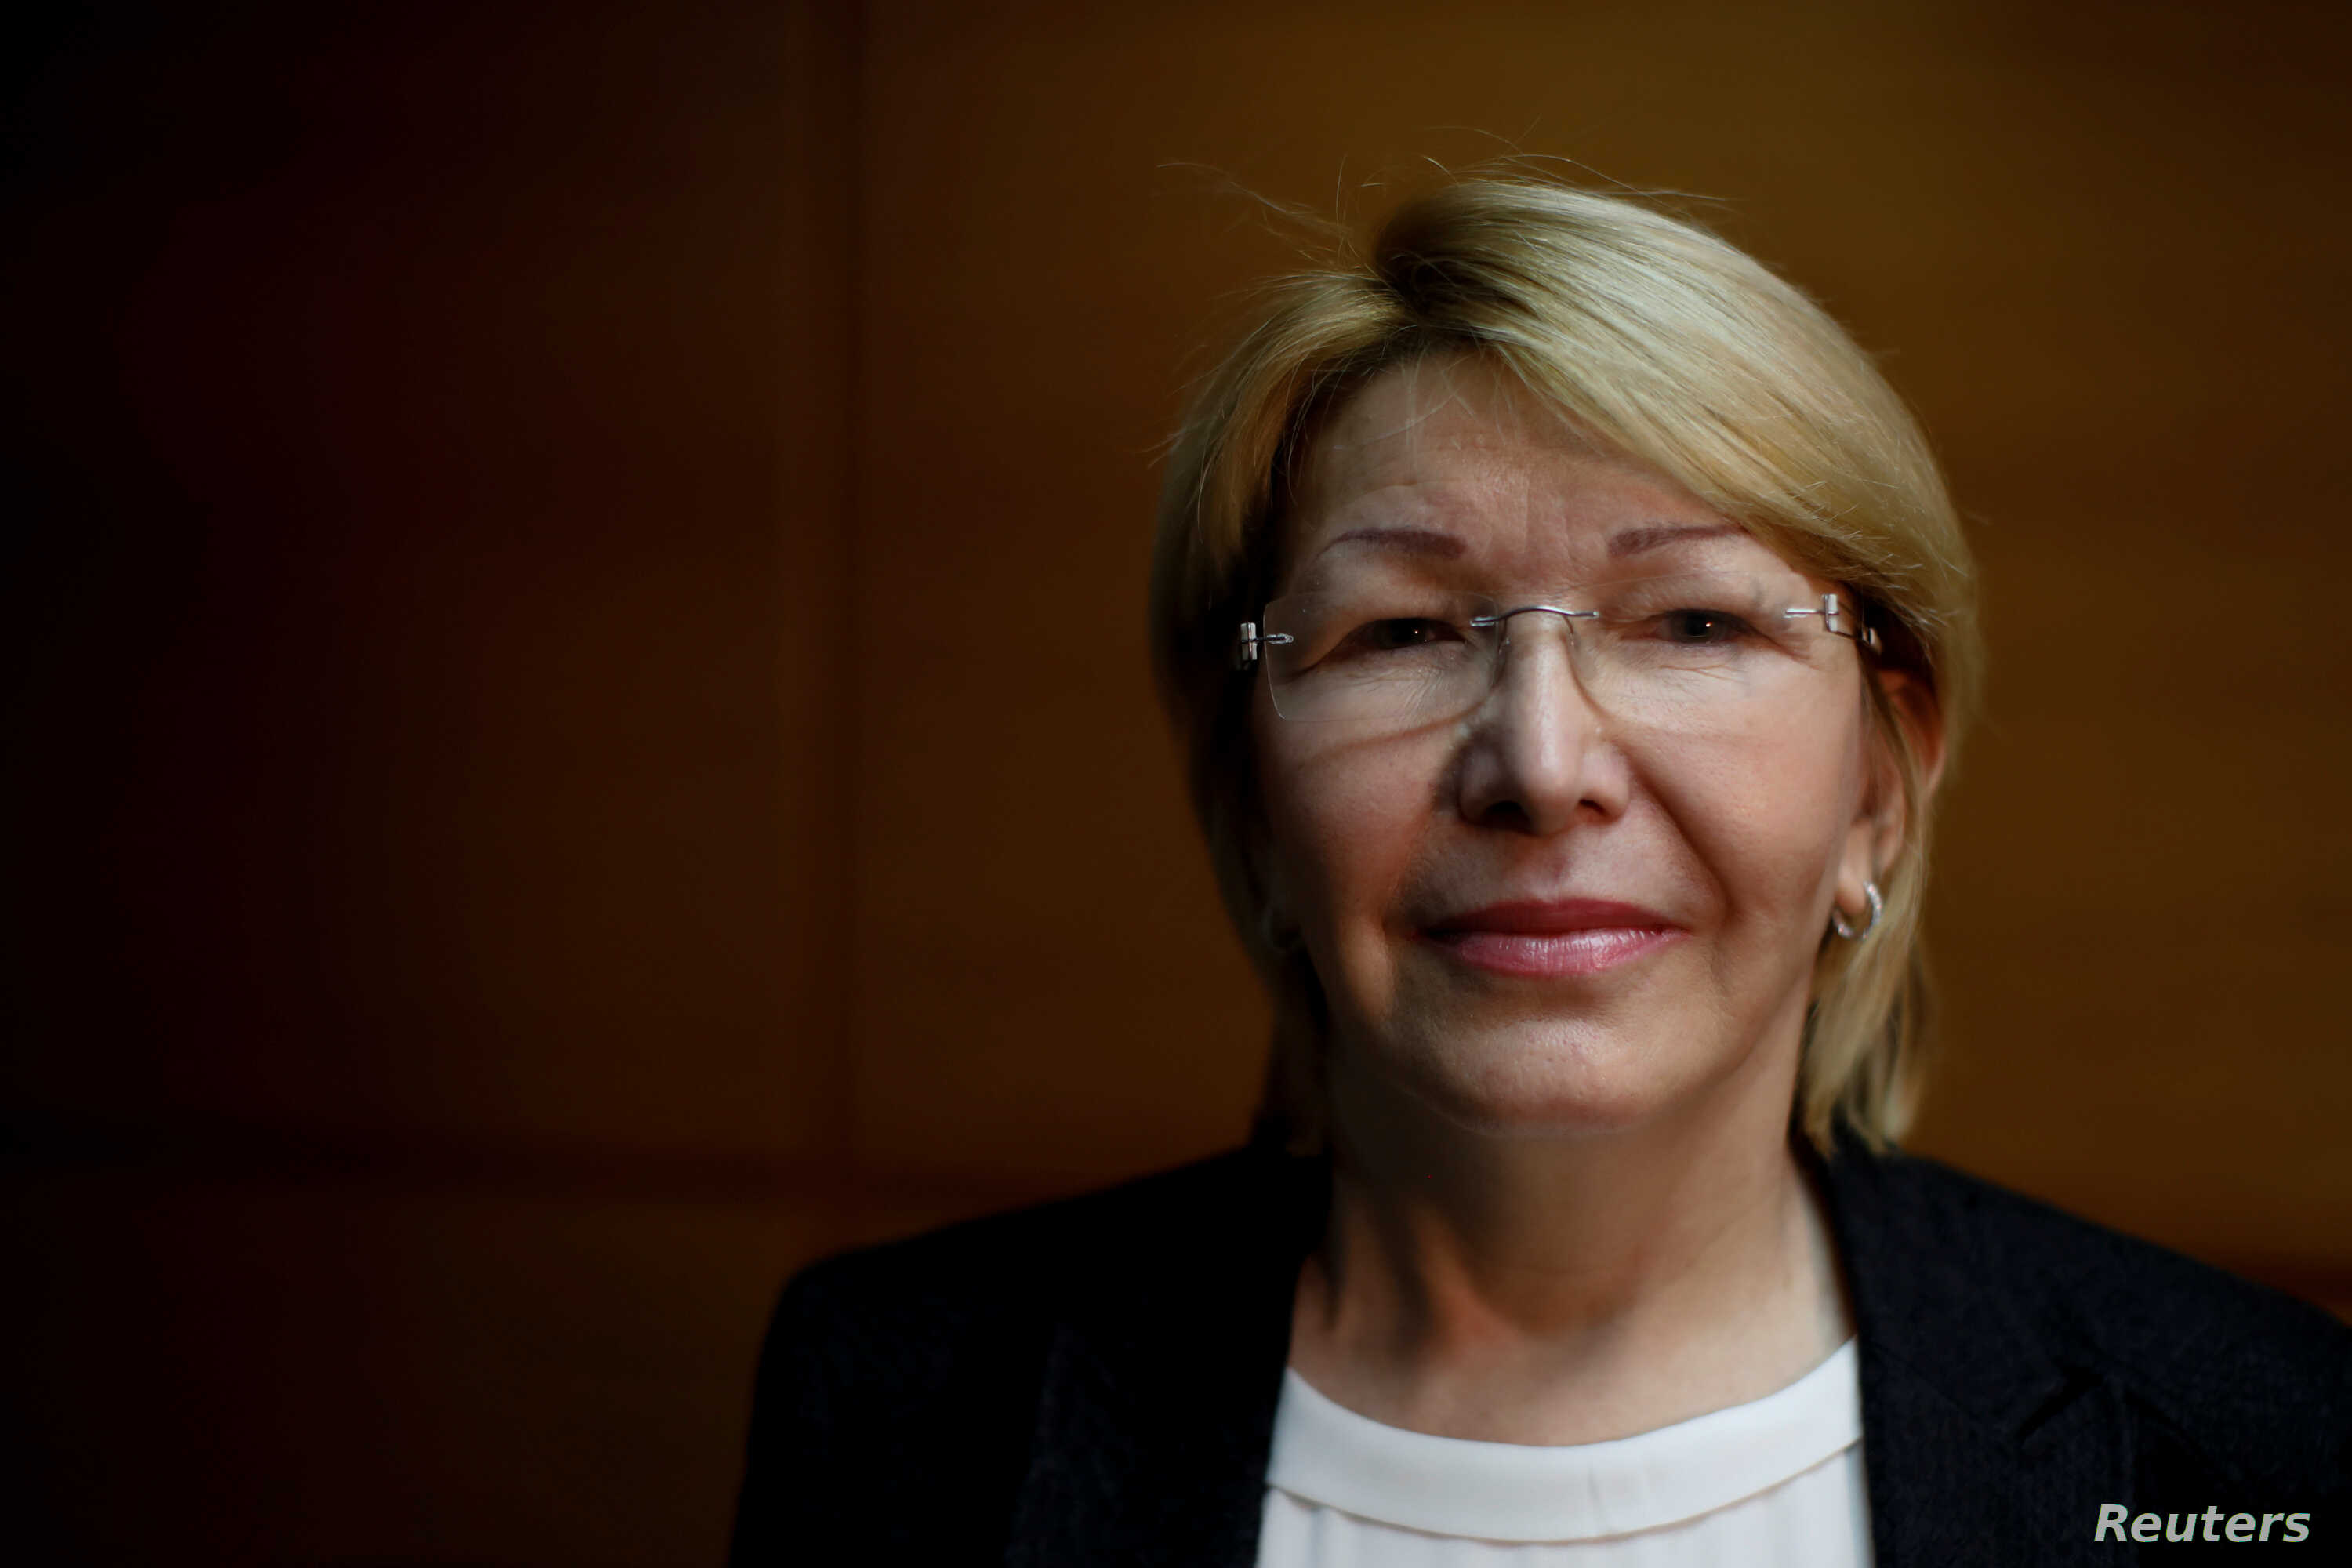 Venezuela's dismissed chief prosecutor Luisa Ortega Diaz poses for a picture during an interview with Reuters in Caracas, Aug. 10, 2017.